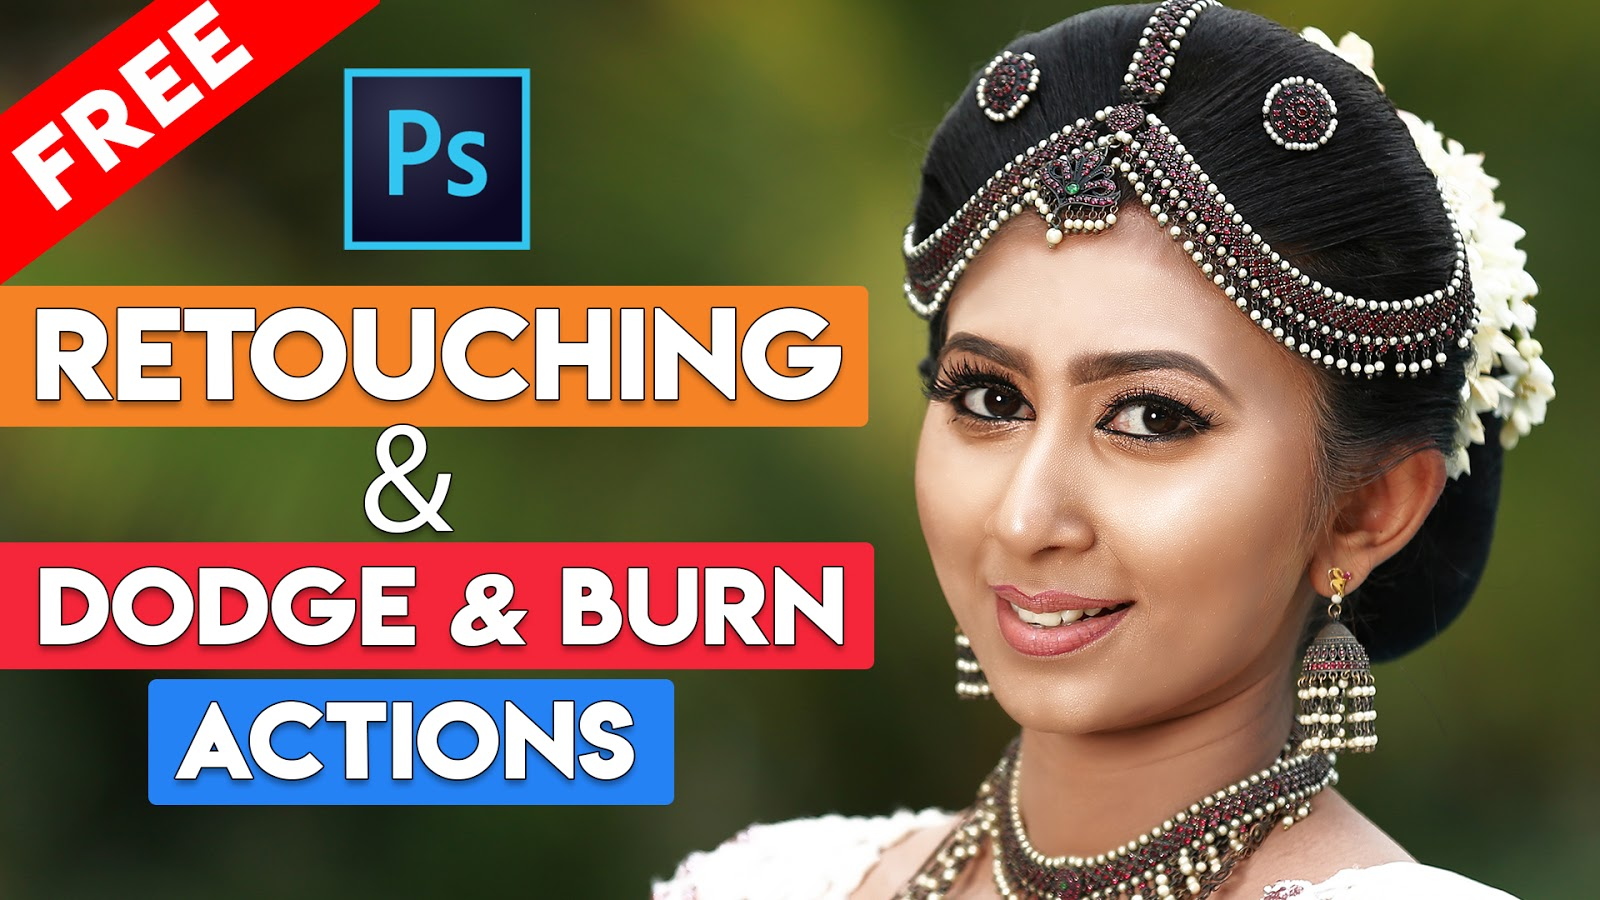 How to Simple Dodge and Burn and Retouching Skin Free